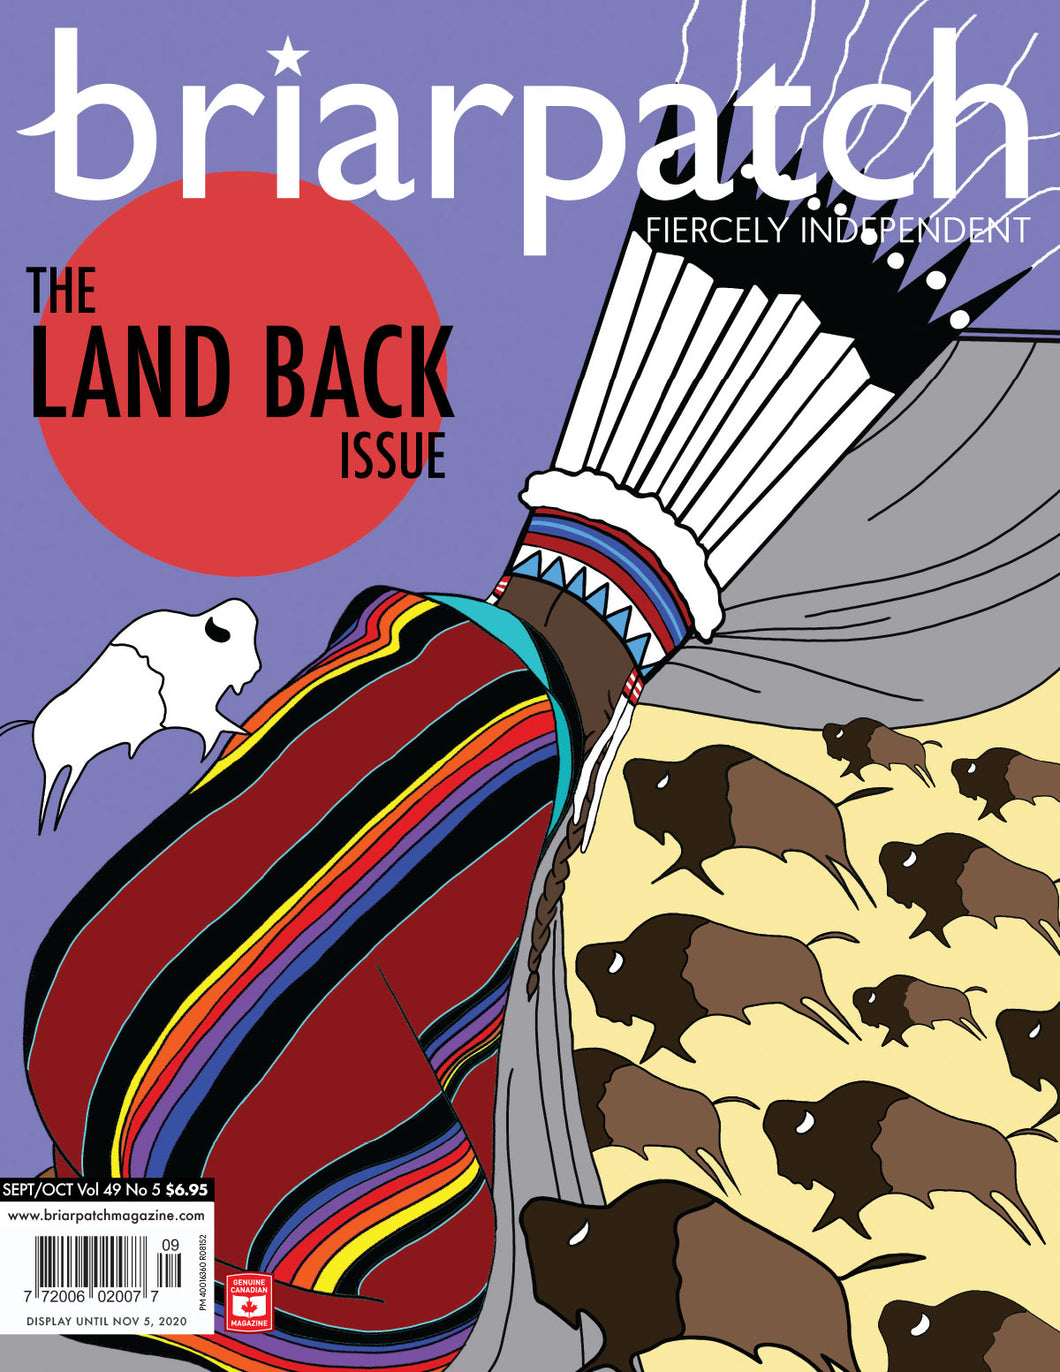 Briarpatch Magazine: The Land Back Issue